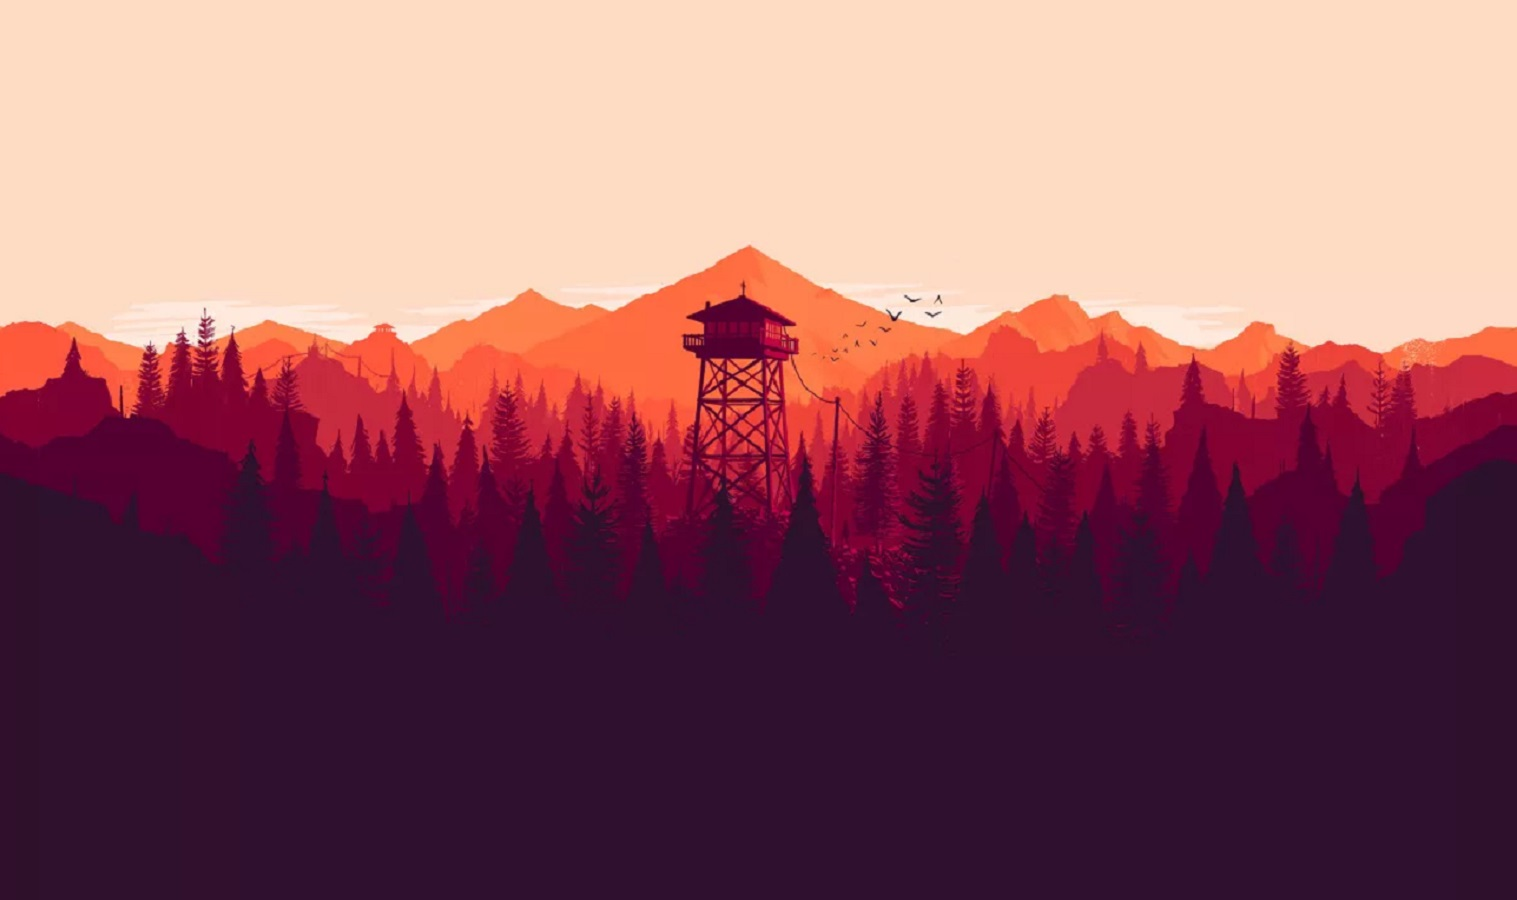 firewatch nintendo switch release date